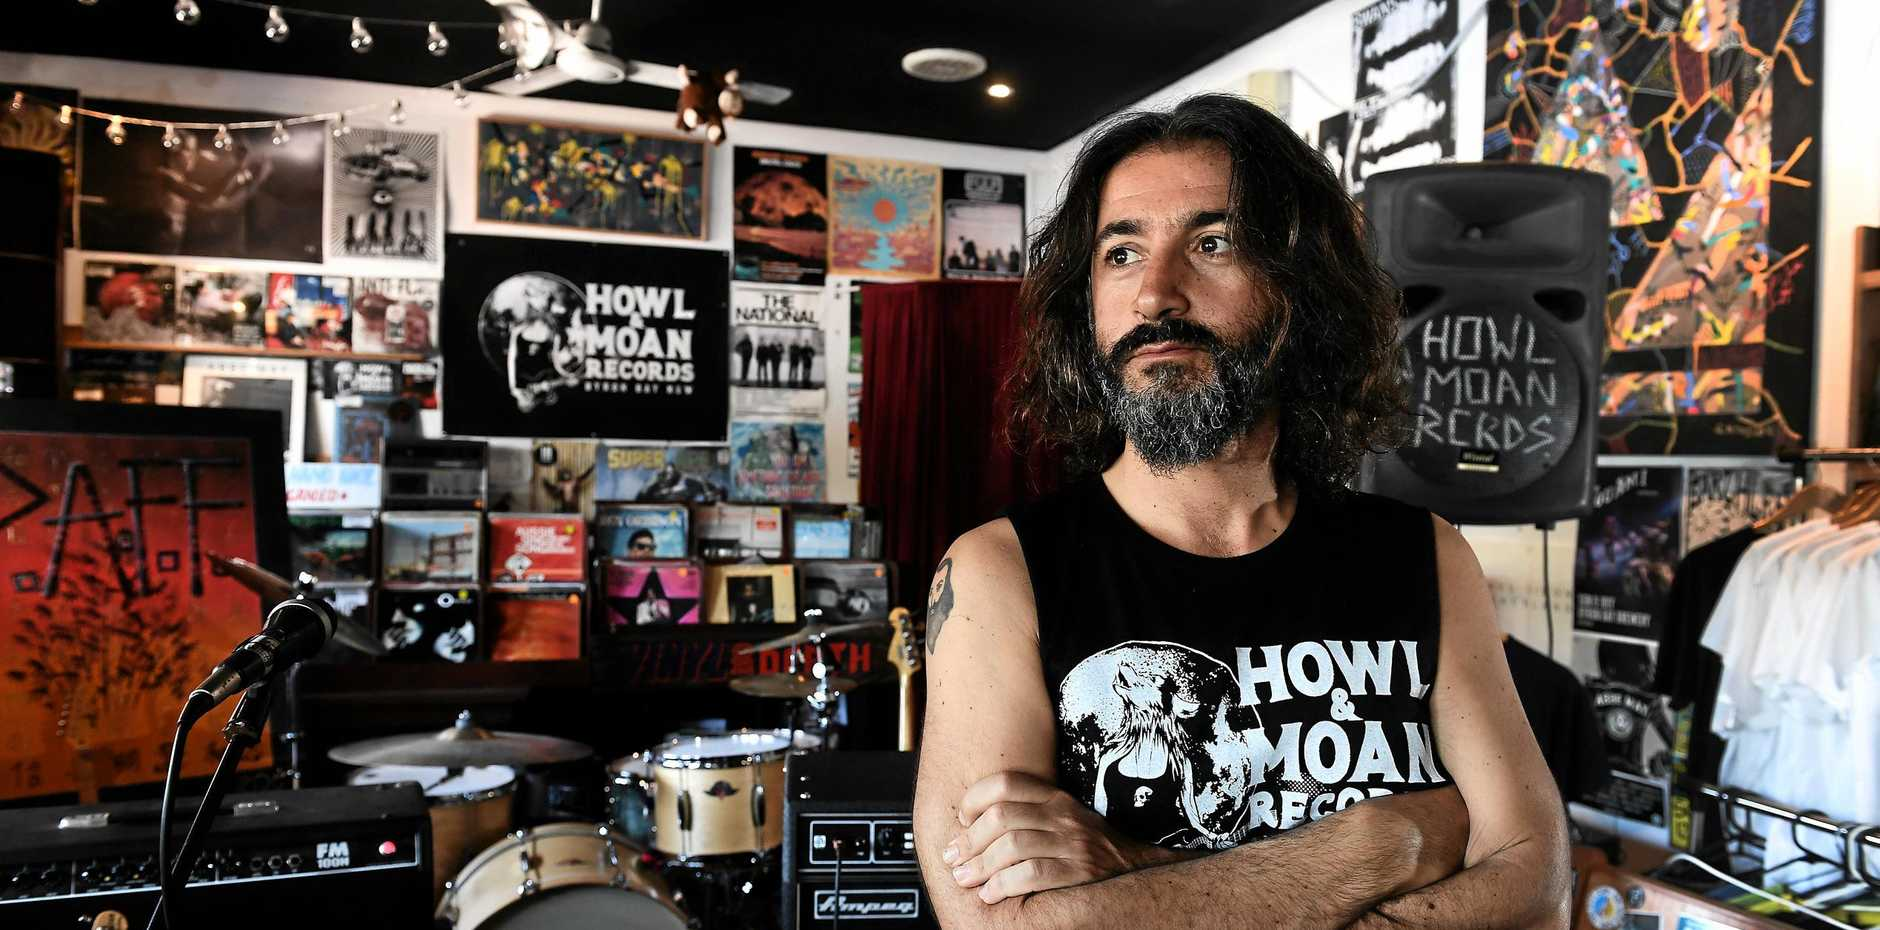 Howl & Moan owner Mario Salvatore Fraietta is thrilled to see local bands given the opportunity to play Falls Festival after he was given the opportunity to curate a local Howl and Moan stage at the massive event.